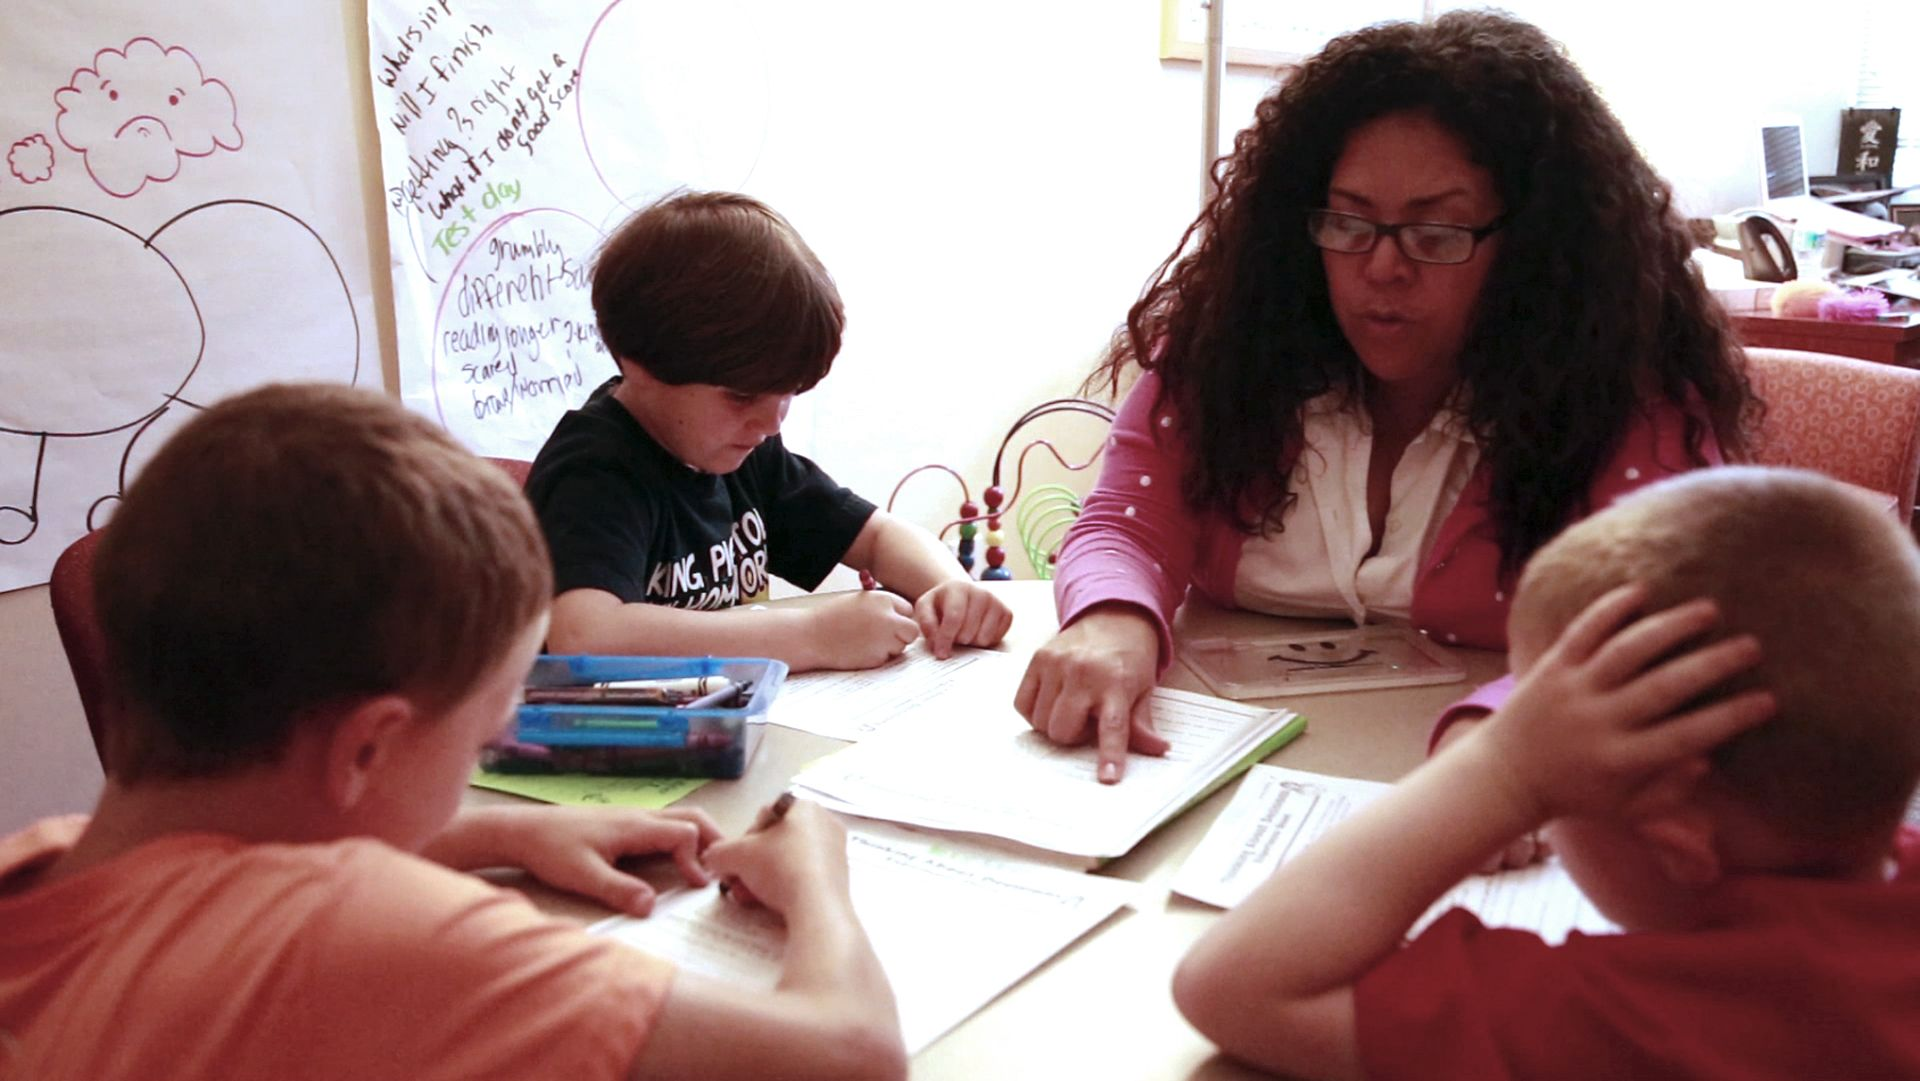 Teacher and a group of students are working together in a classroom.